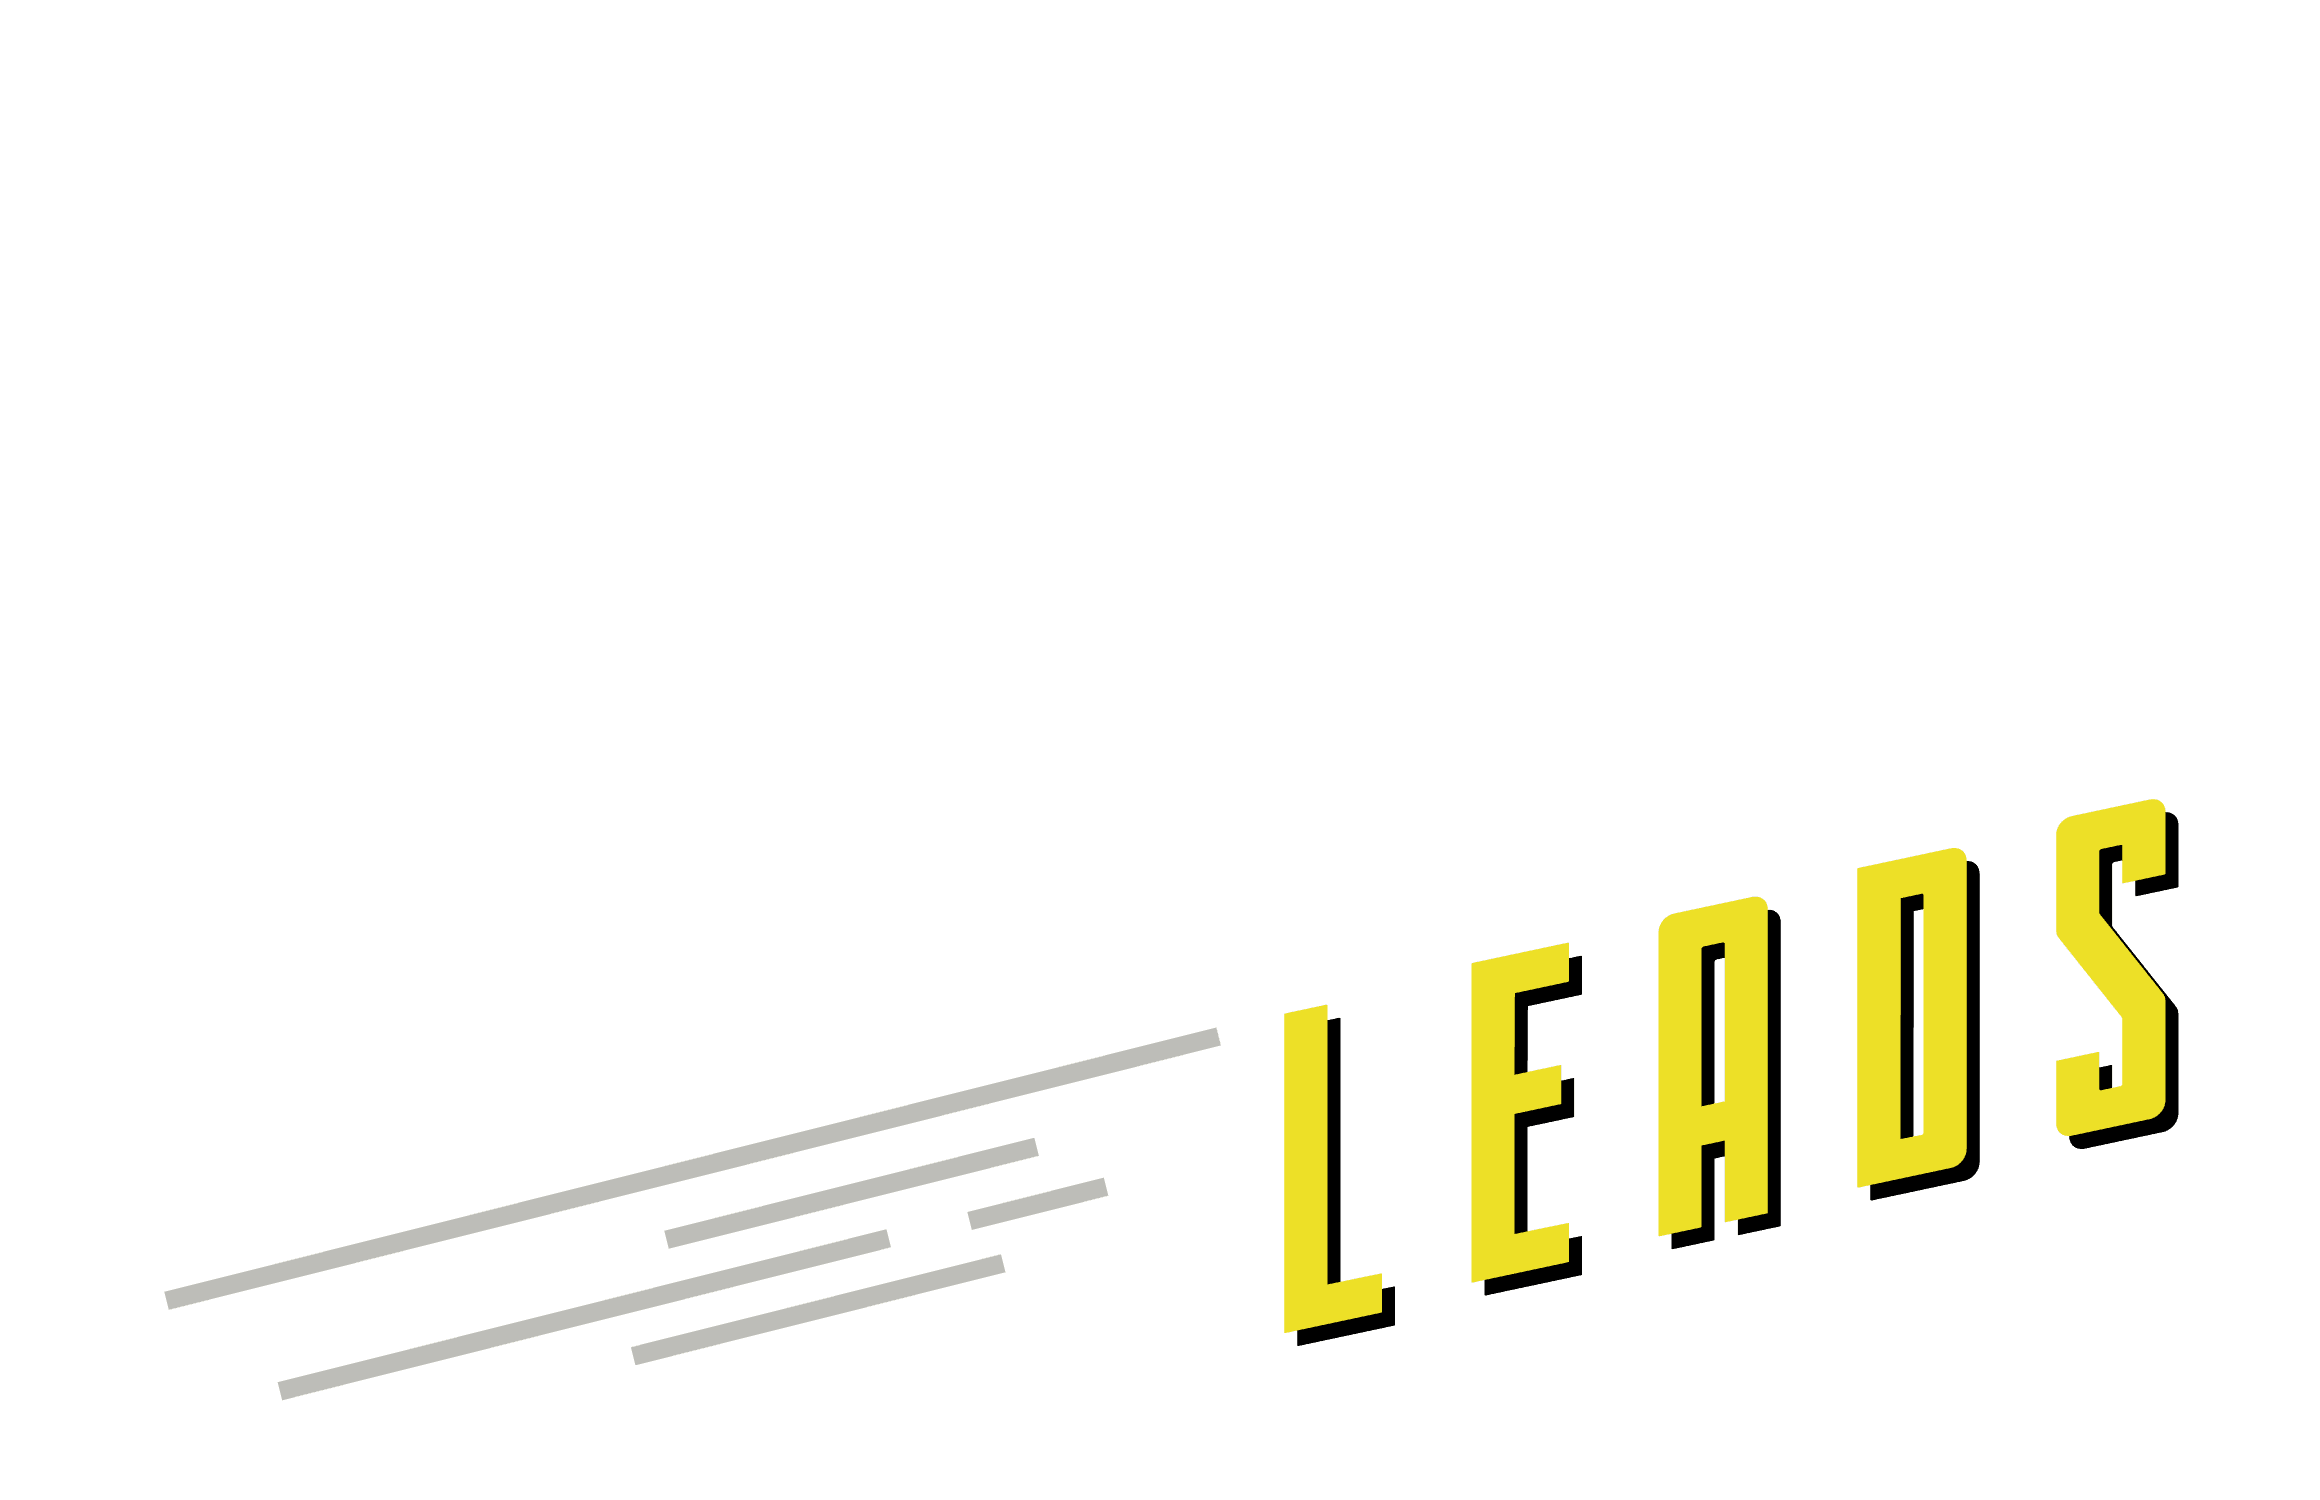 Leads in bold yellow comic book text with dashing lines to the left